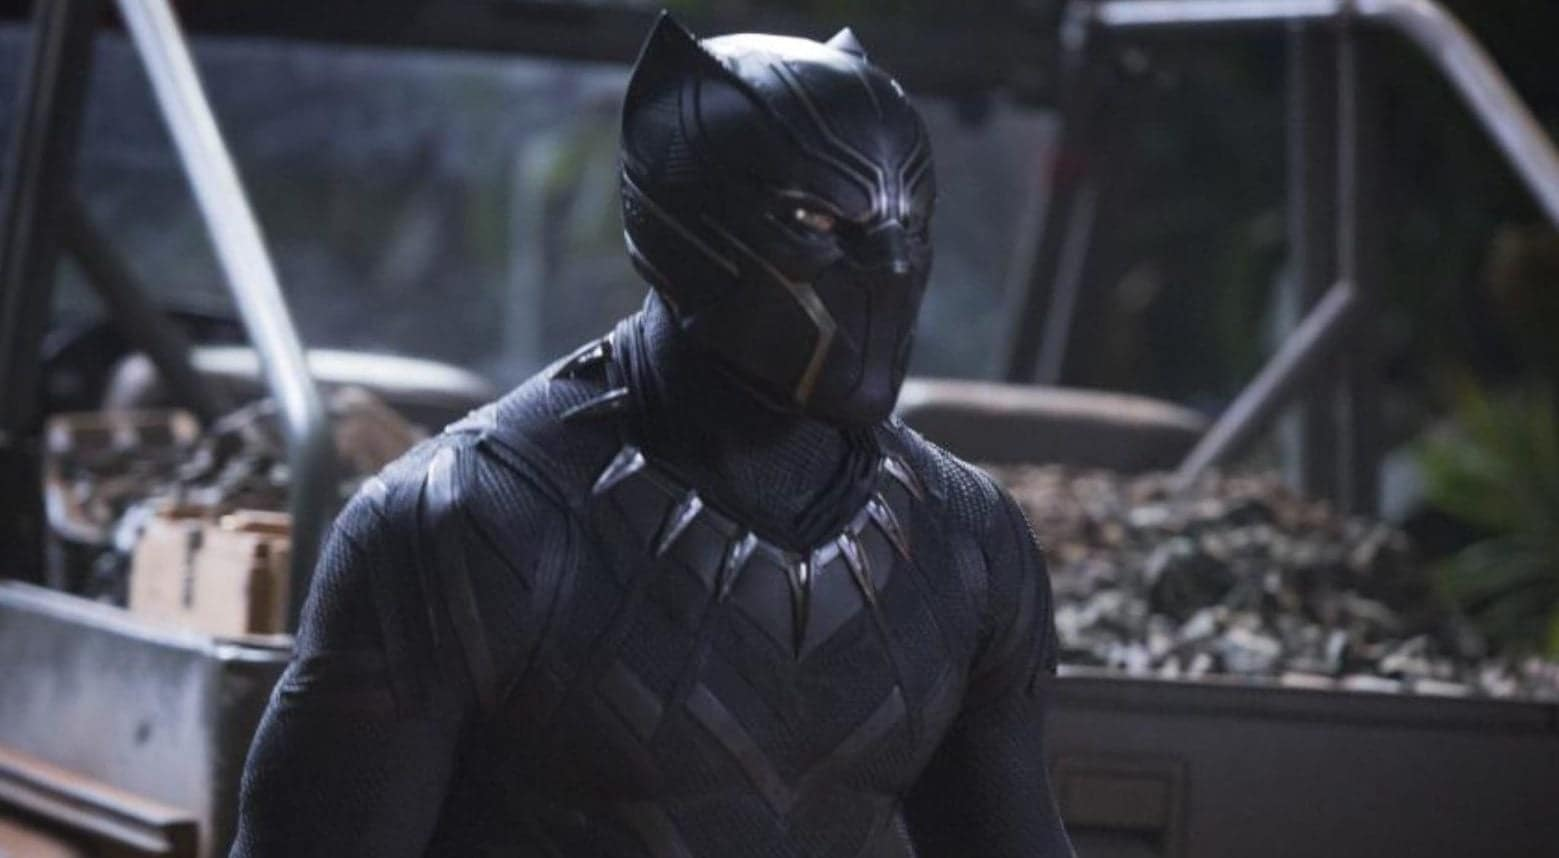 'Black Panther' Has Made Life Easier For Black Cats